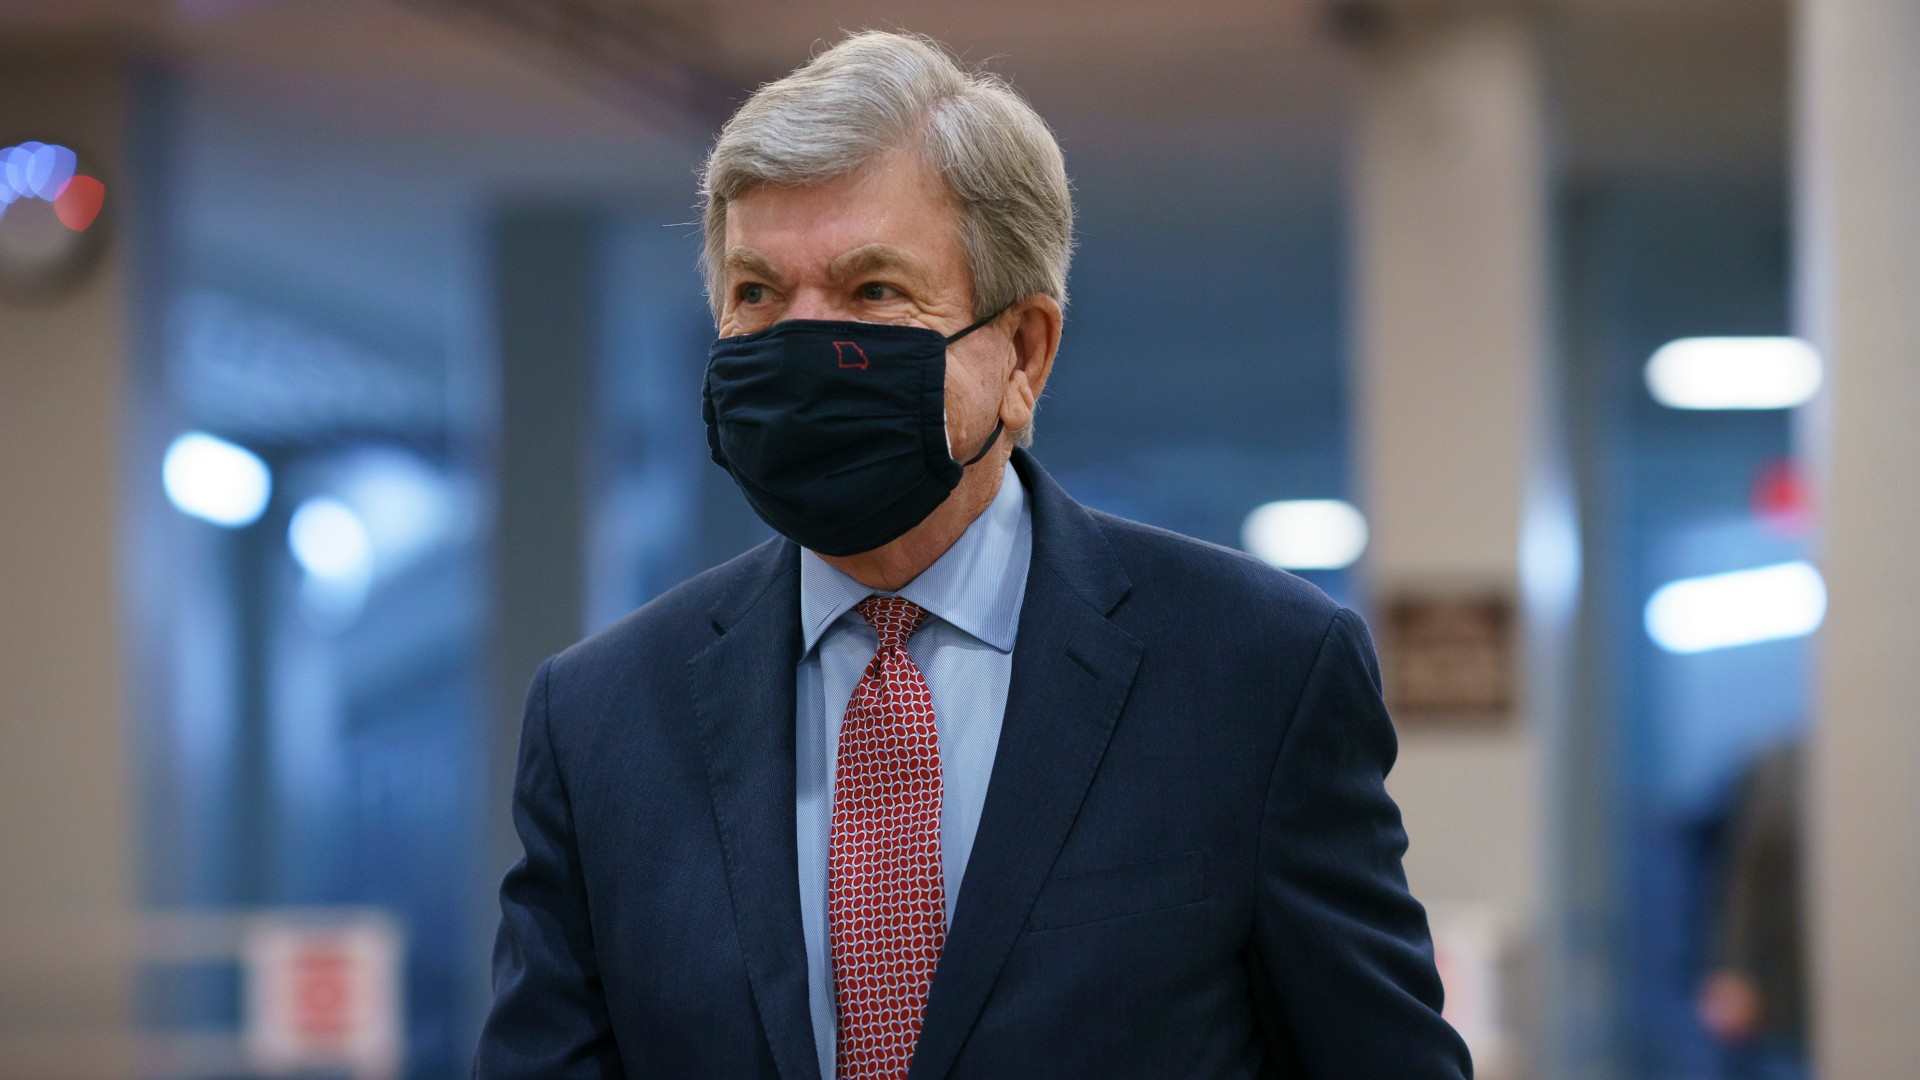 In this March 5, 2021, file photo, Sen. Roy Blunt, R-Mo., heads to the chamber as the Senate holds a voting marathon on the Democrats' $1.9 trillion COVID-19 relief bill that's expected to end with the chamber's approval of the measure, at the Capitol in Washington. Sen. Blunt says he will not seek a third term in the U.S. Senate. Blunt, who turned 71 in January, was widely expected to seek a third term in 2022. He made the surprise announcement in a video Monday, March 8, 2021. (AP Photo/J. Scott Applewhite File)